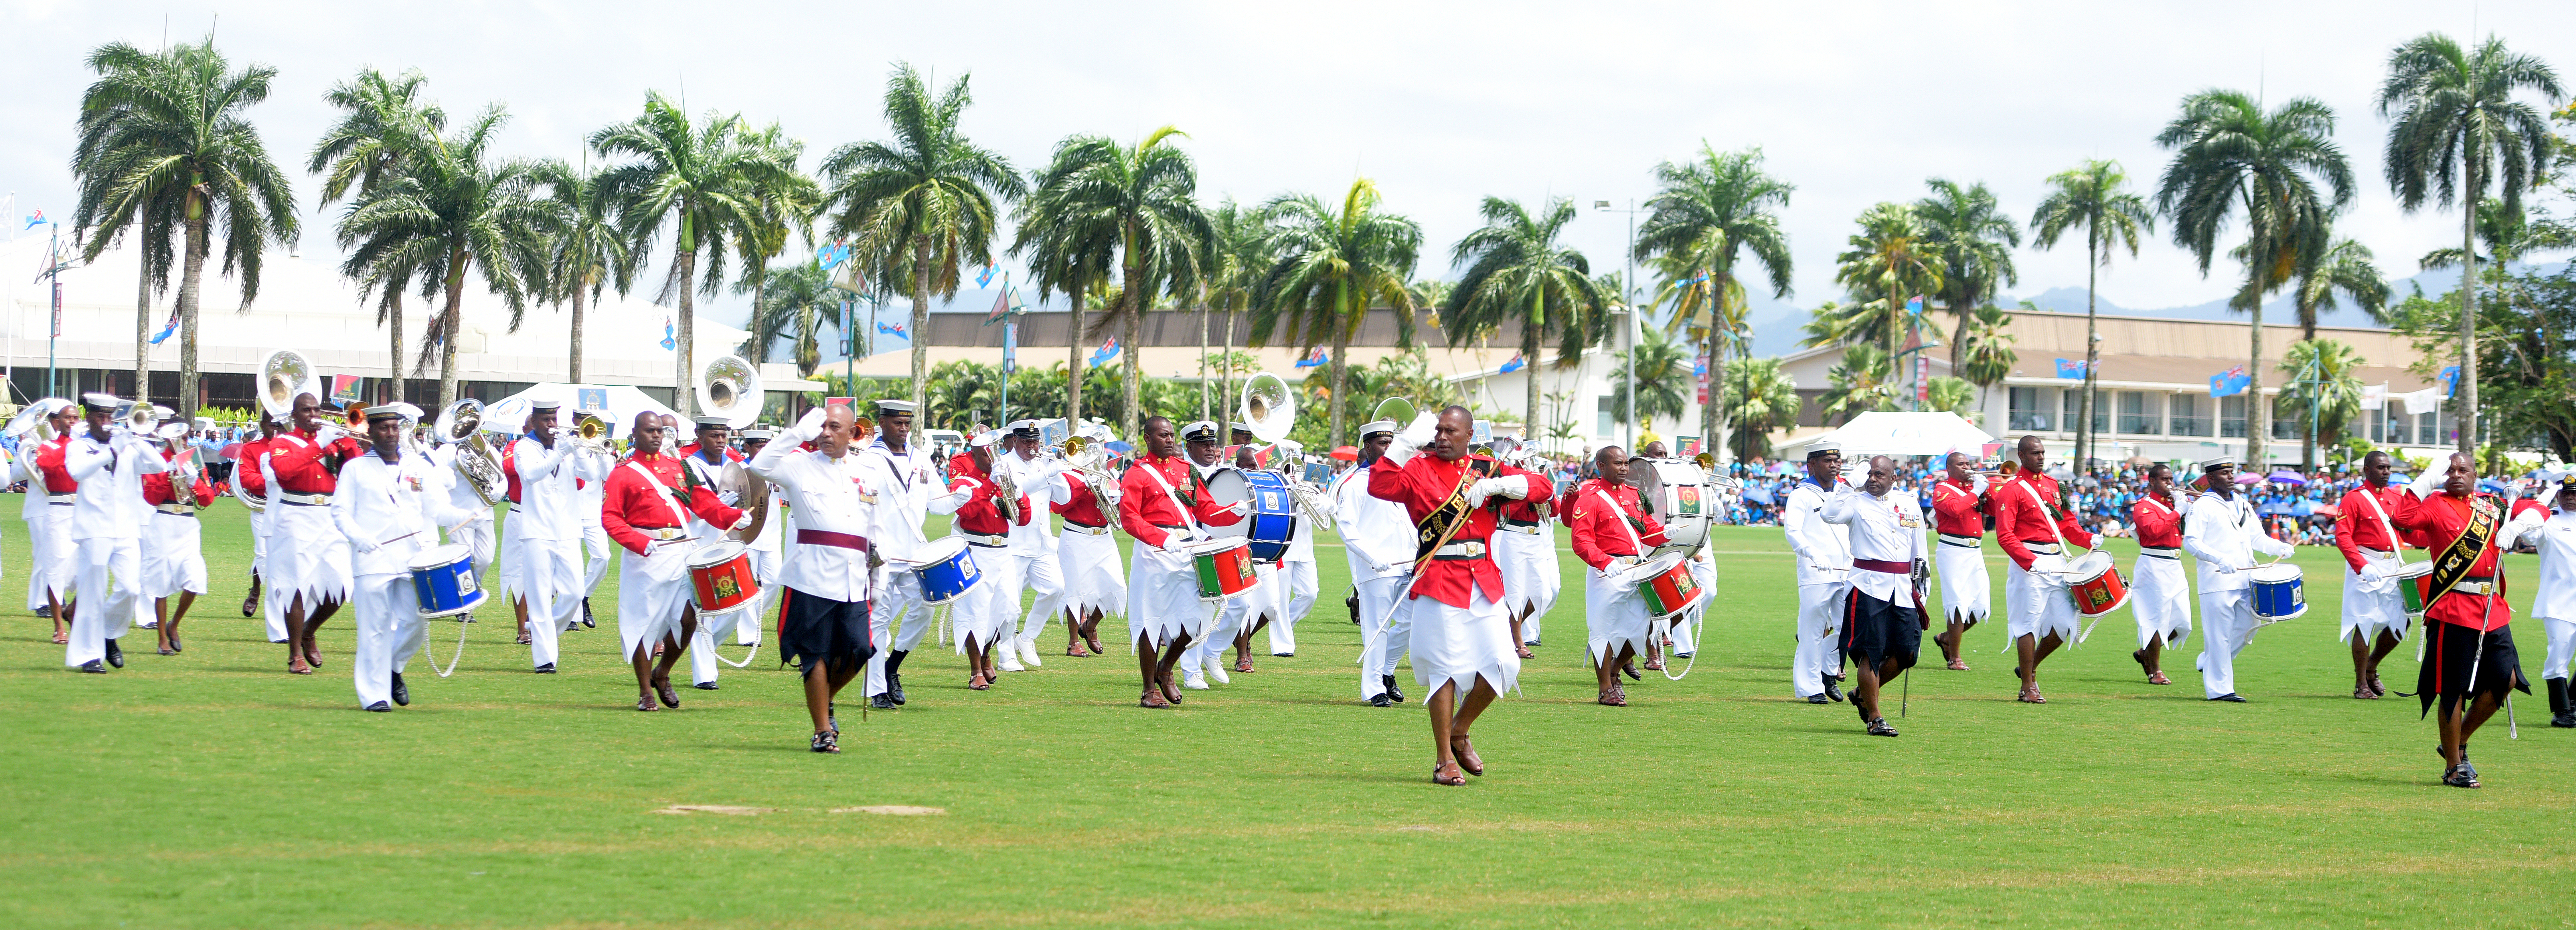 RFMF Naval division band during The 50th Independence commemorative Fiji Day Parade at Albert Park on October 7, 2020. Photo: Ronald Kumar.